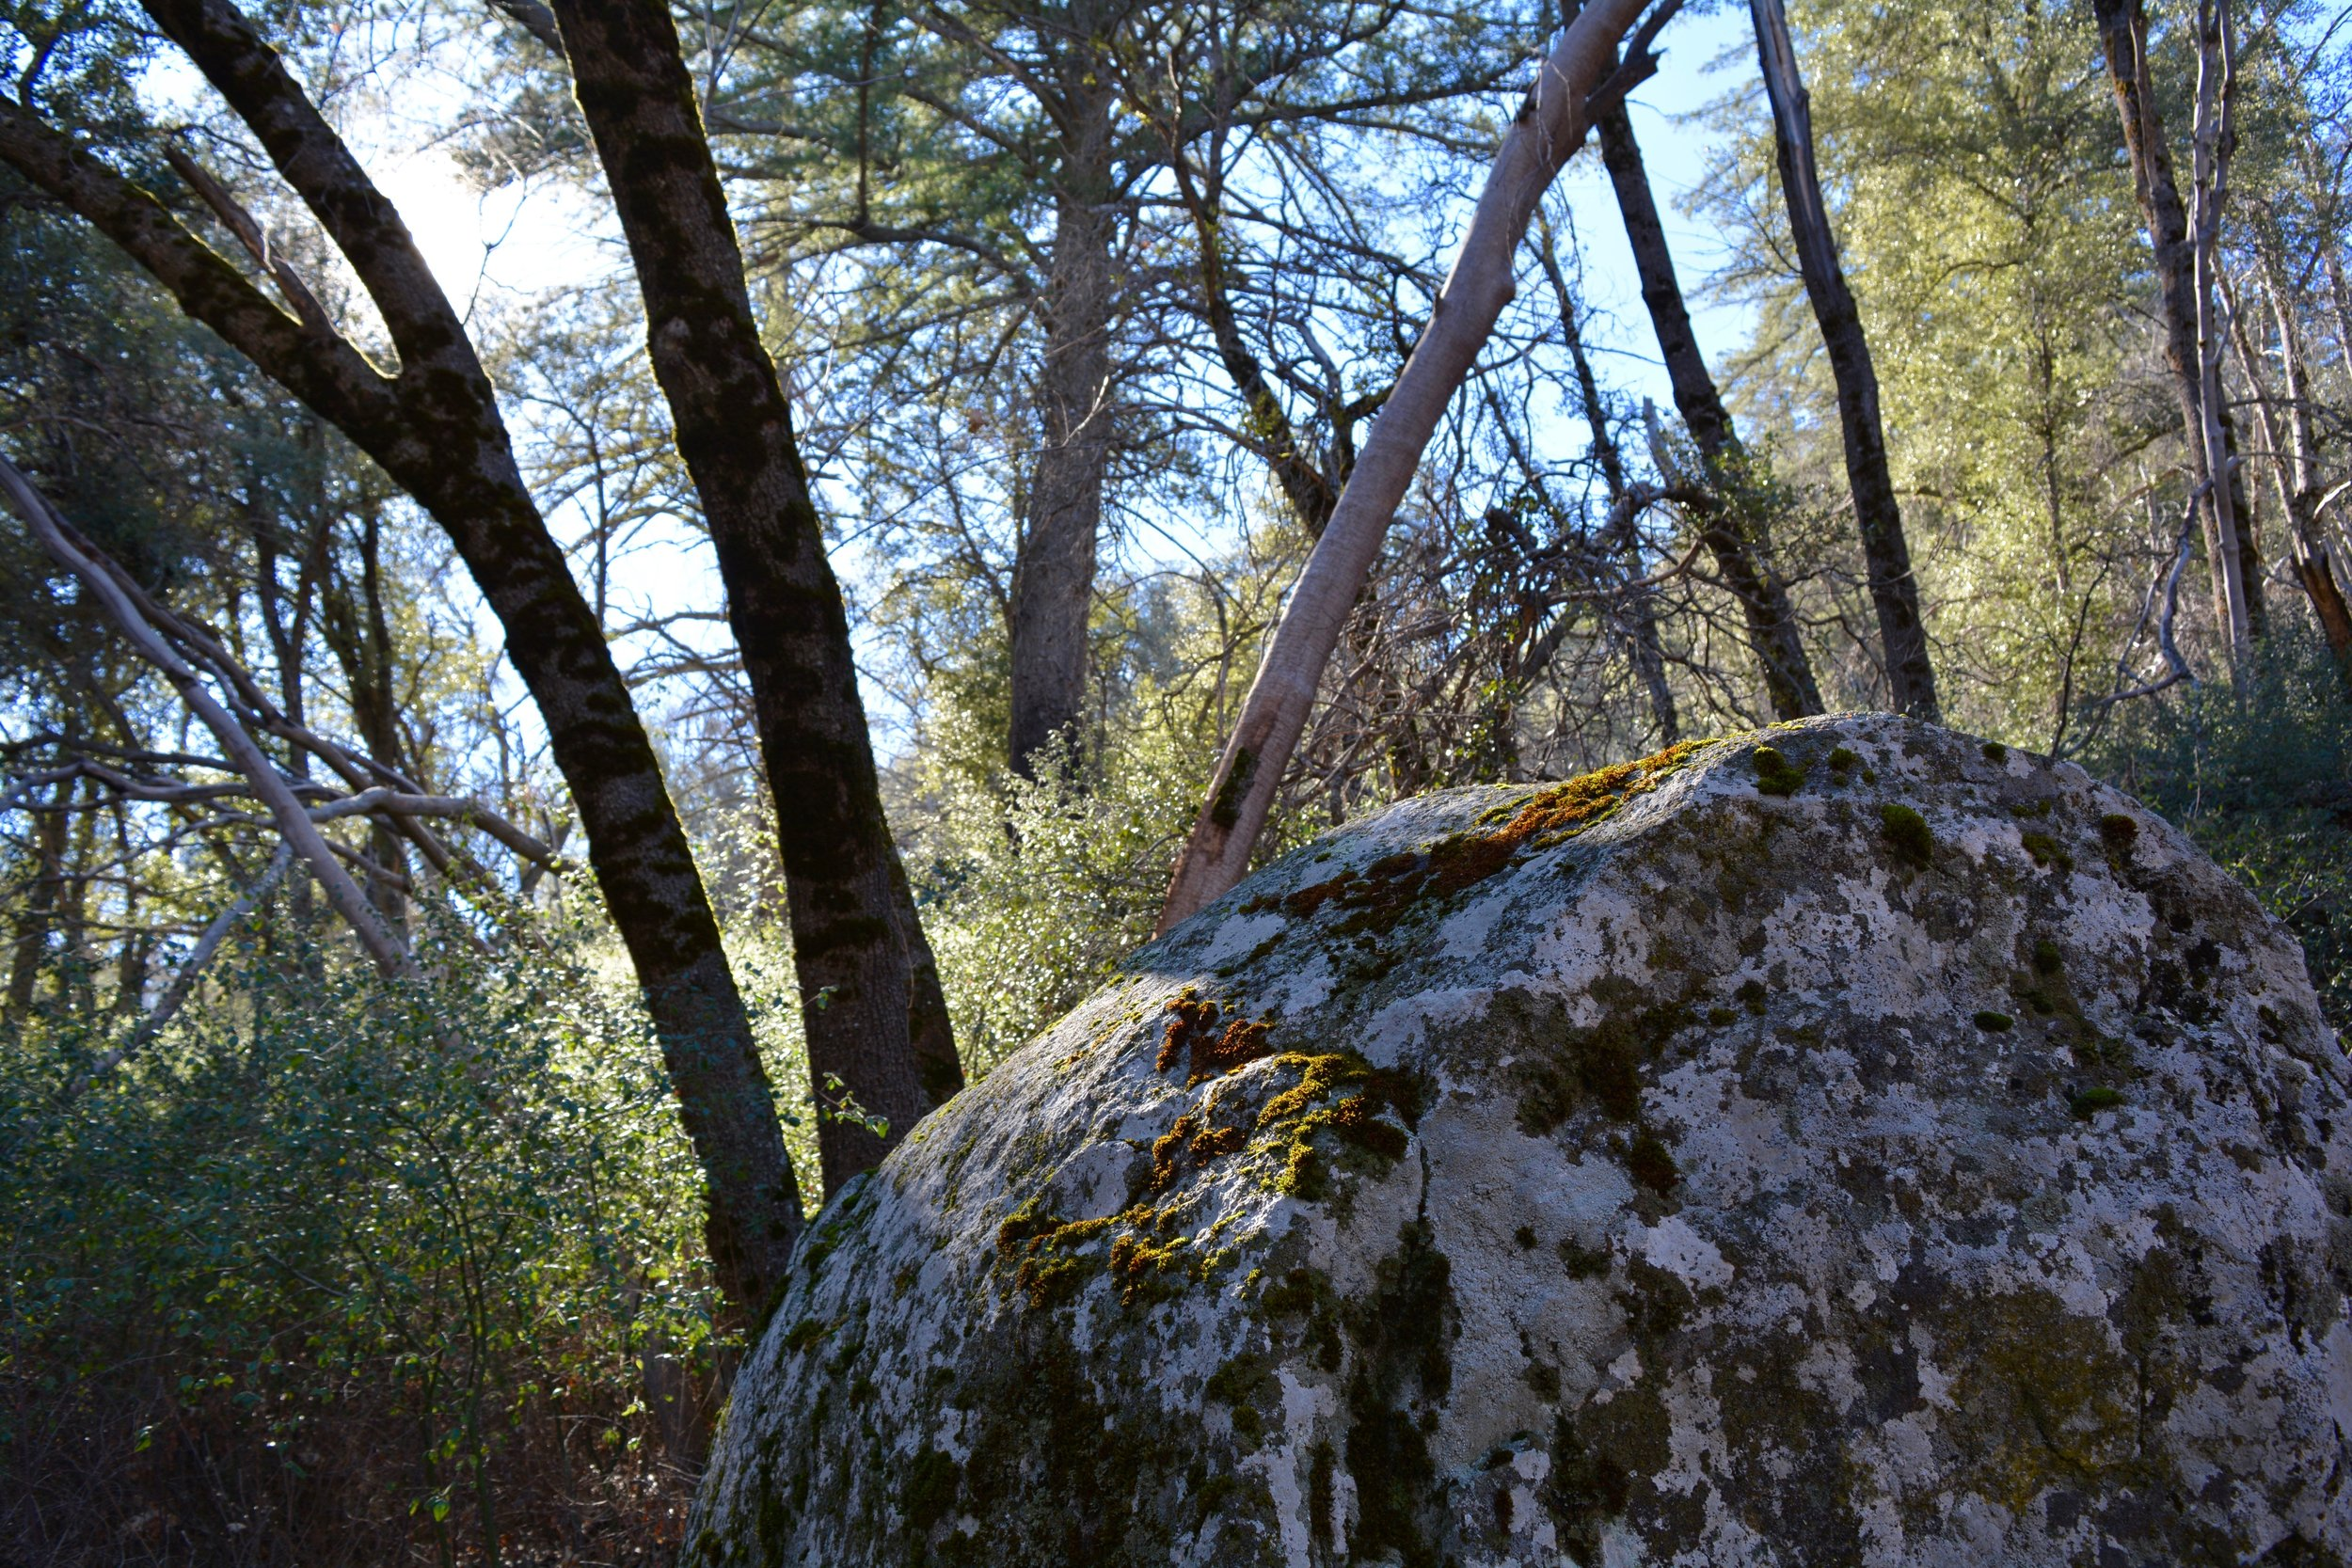 Boulder at Palomar Mountain